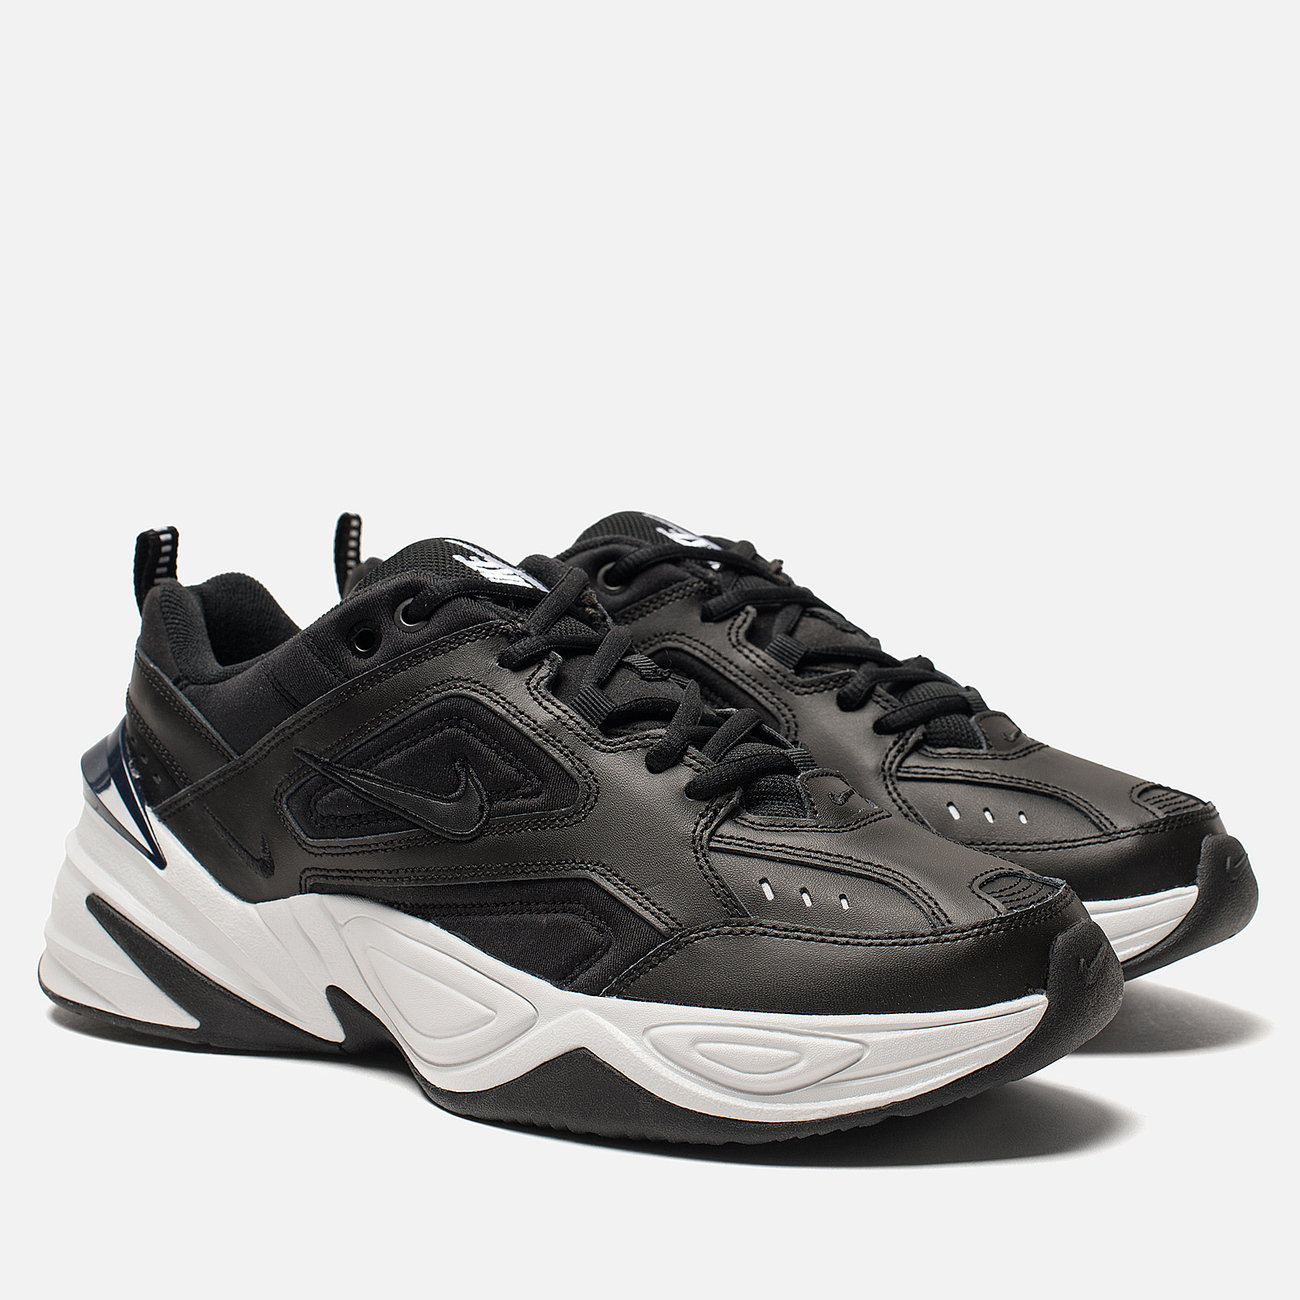 Мужские кроссовки Nike M2K Tekno Black/Off White/Obsidian/Black